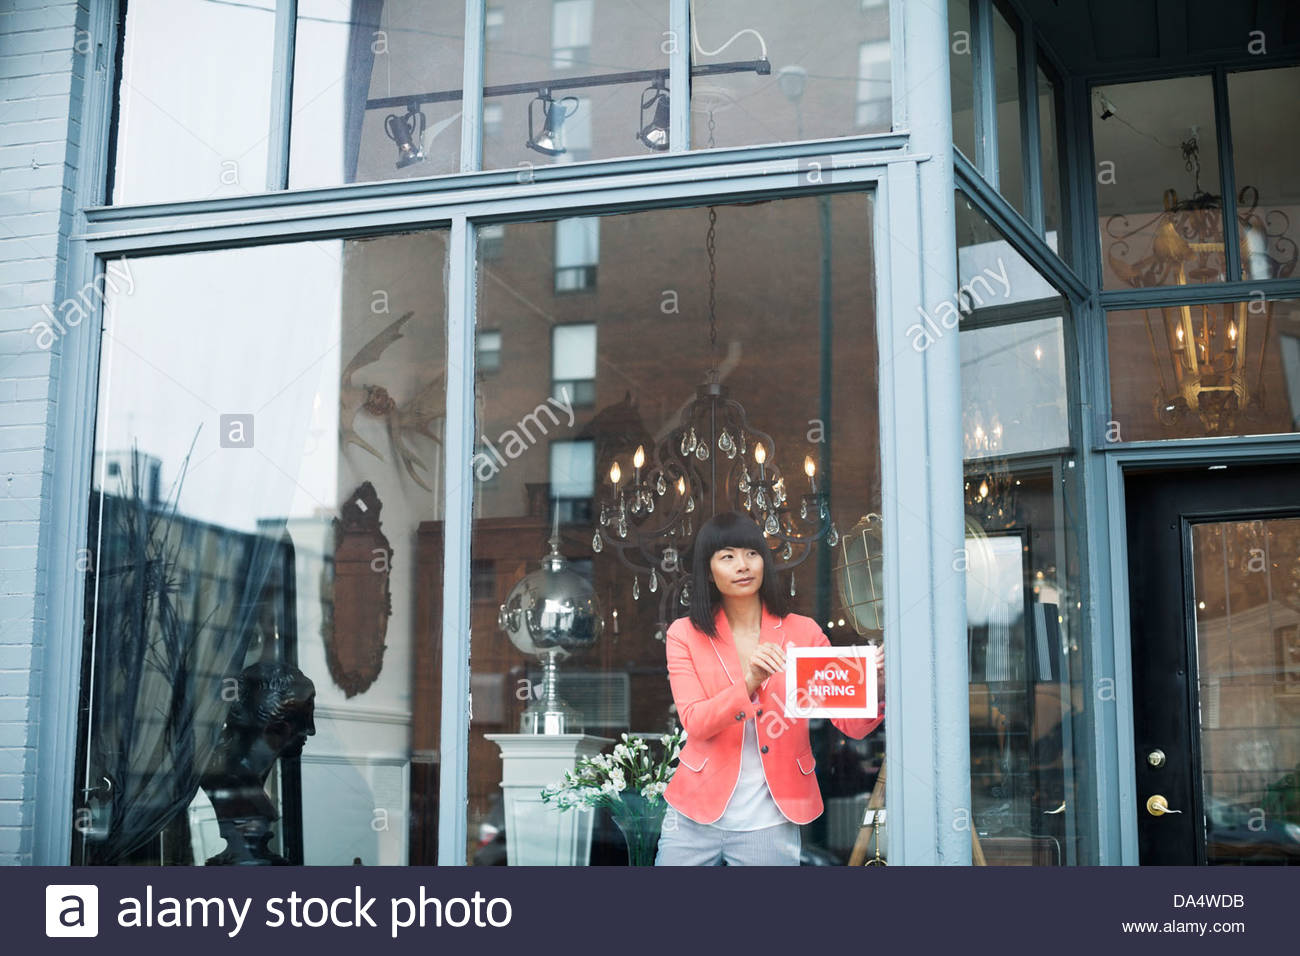 Female business owner displaying help wanted sign in furniture store window - Stock Image